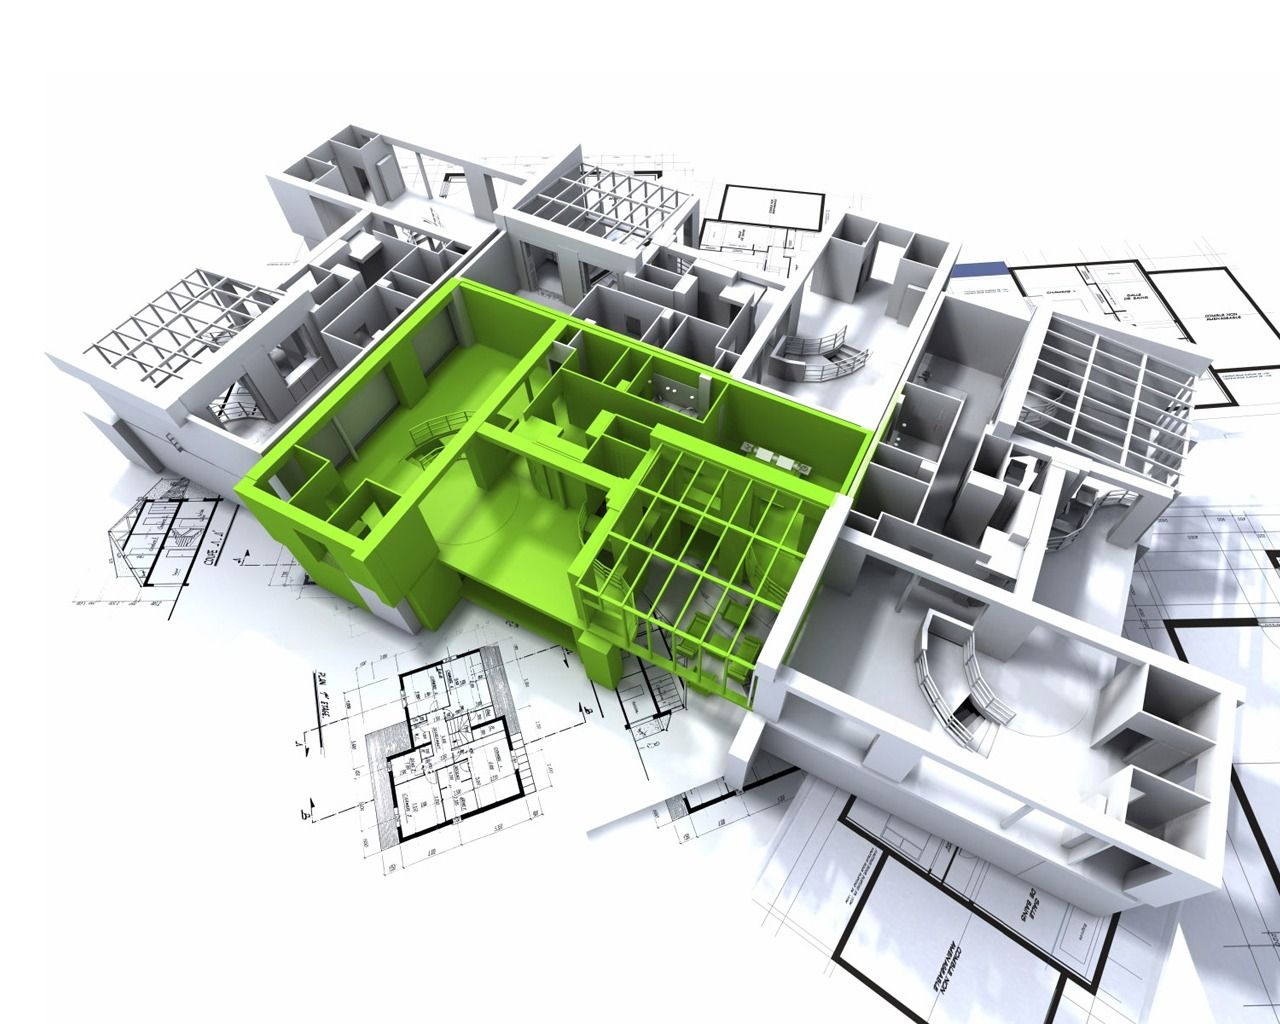 Architecture Design Images uses cad drafting and 3d modeling services to design 3d